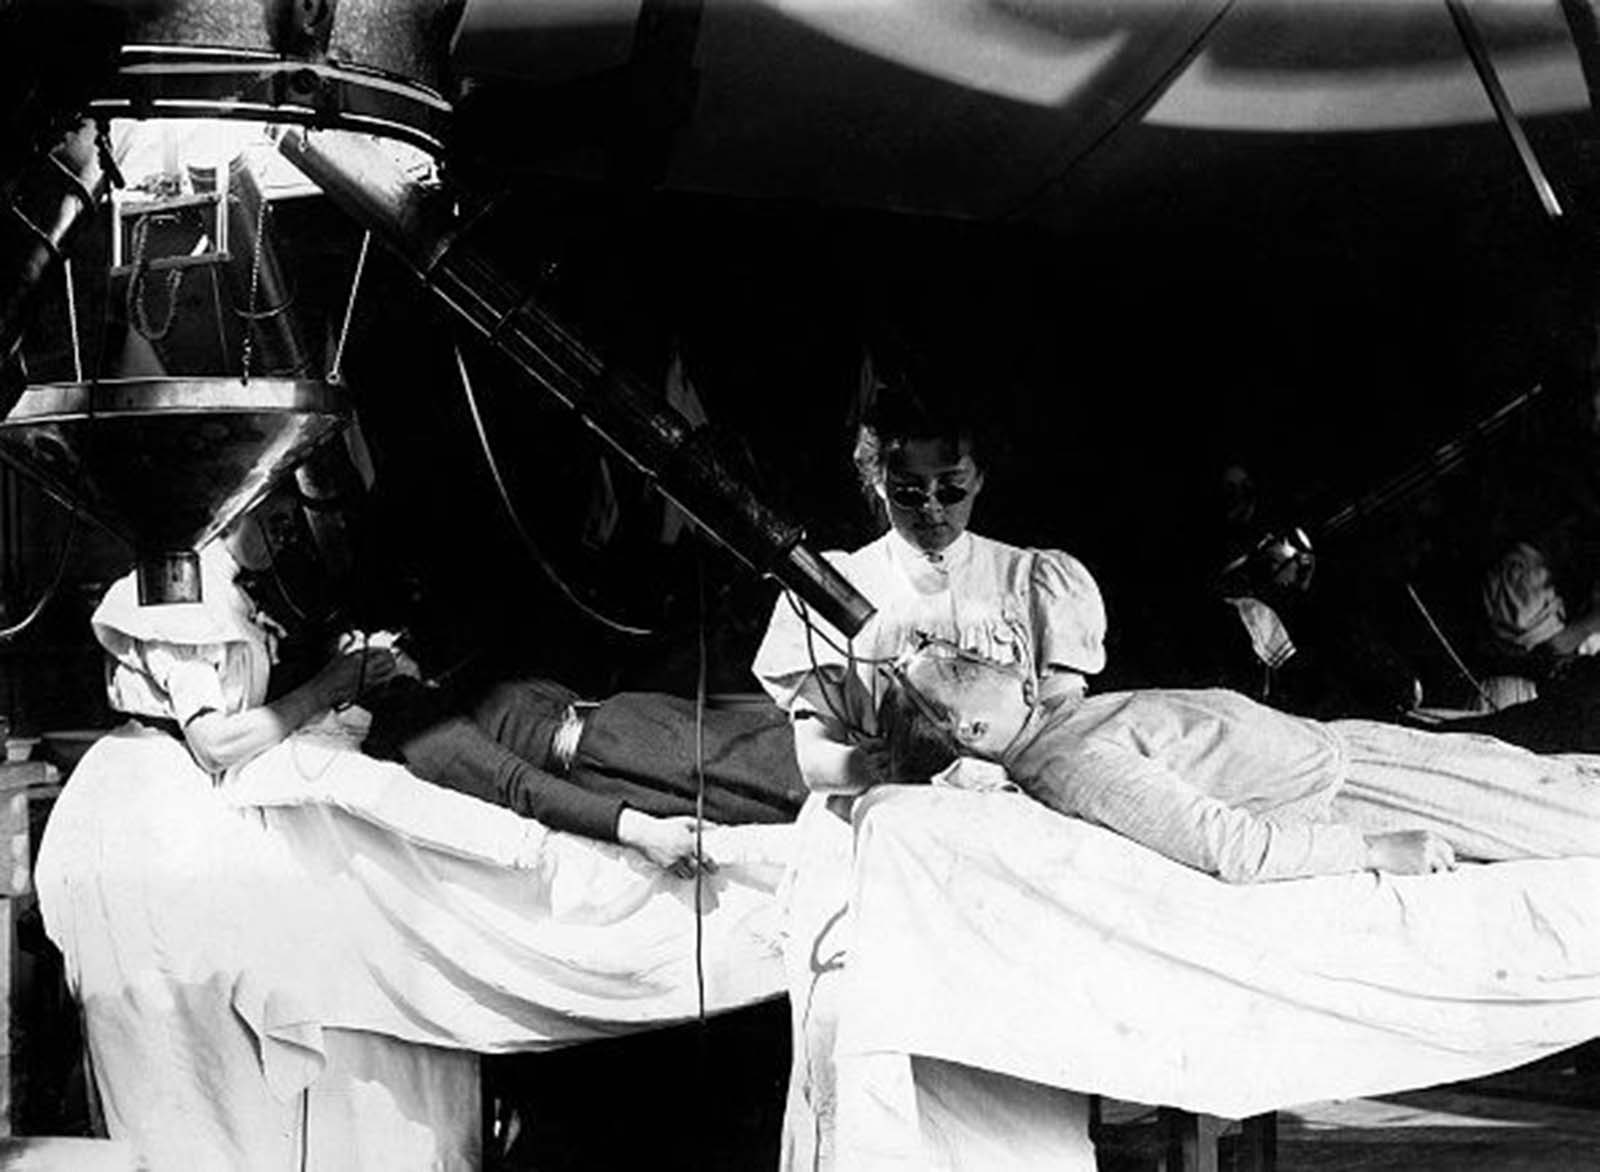 Health cure in the Institut Finsen, Copenhagen, Denmark. Patients getting treatment with electric light. 1900s.